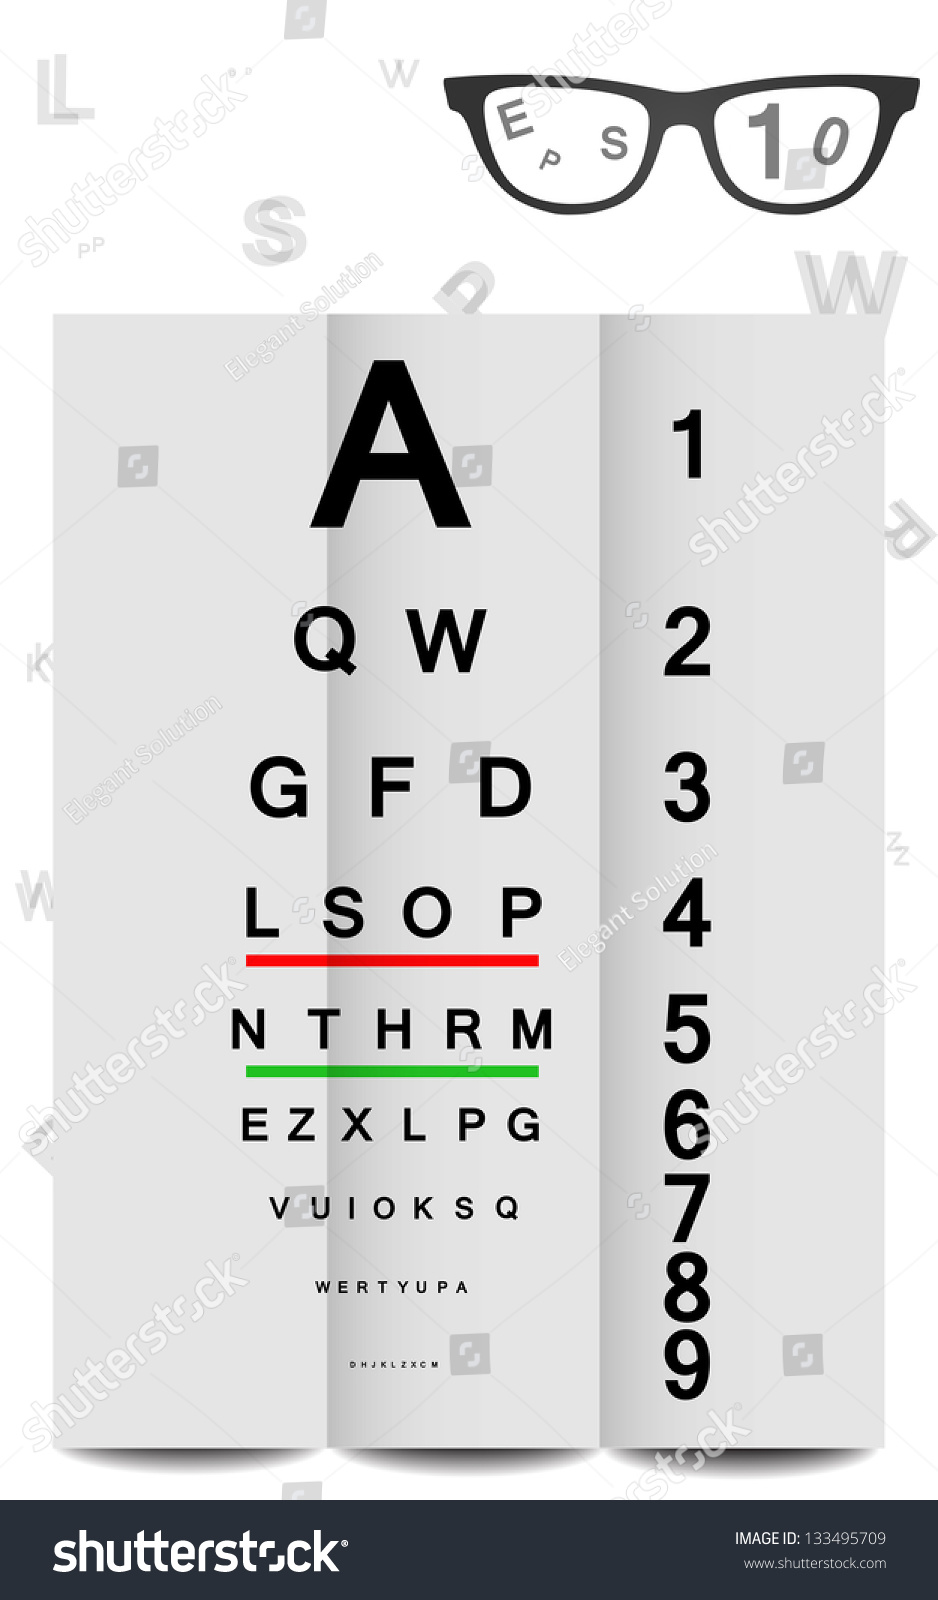 Computer strength eye chart images free any chart examples computer strength eye chart choice image free any chart examples computer strength eye chart image collections nvjuhfo Gallery